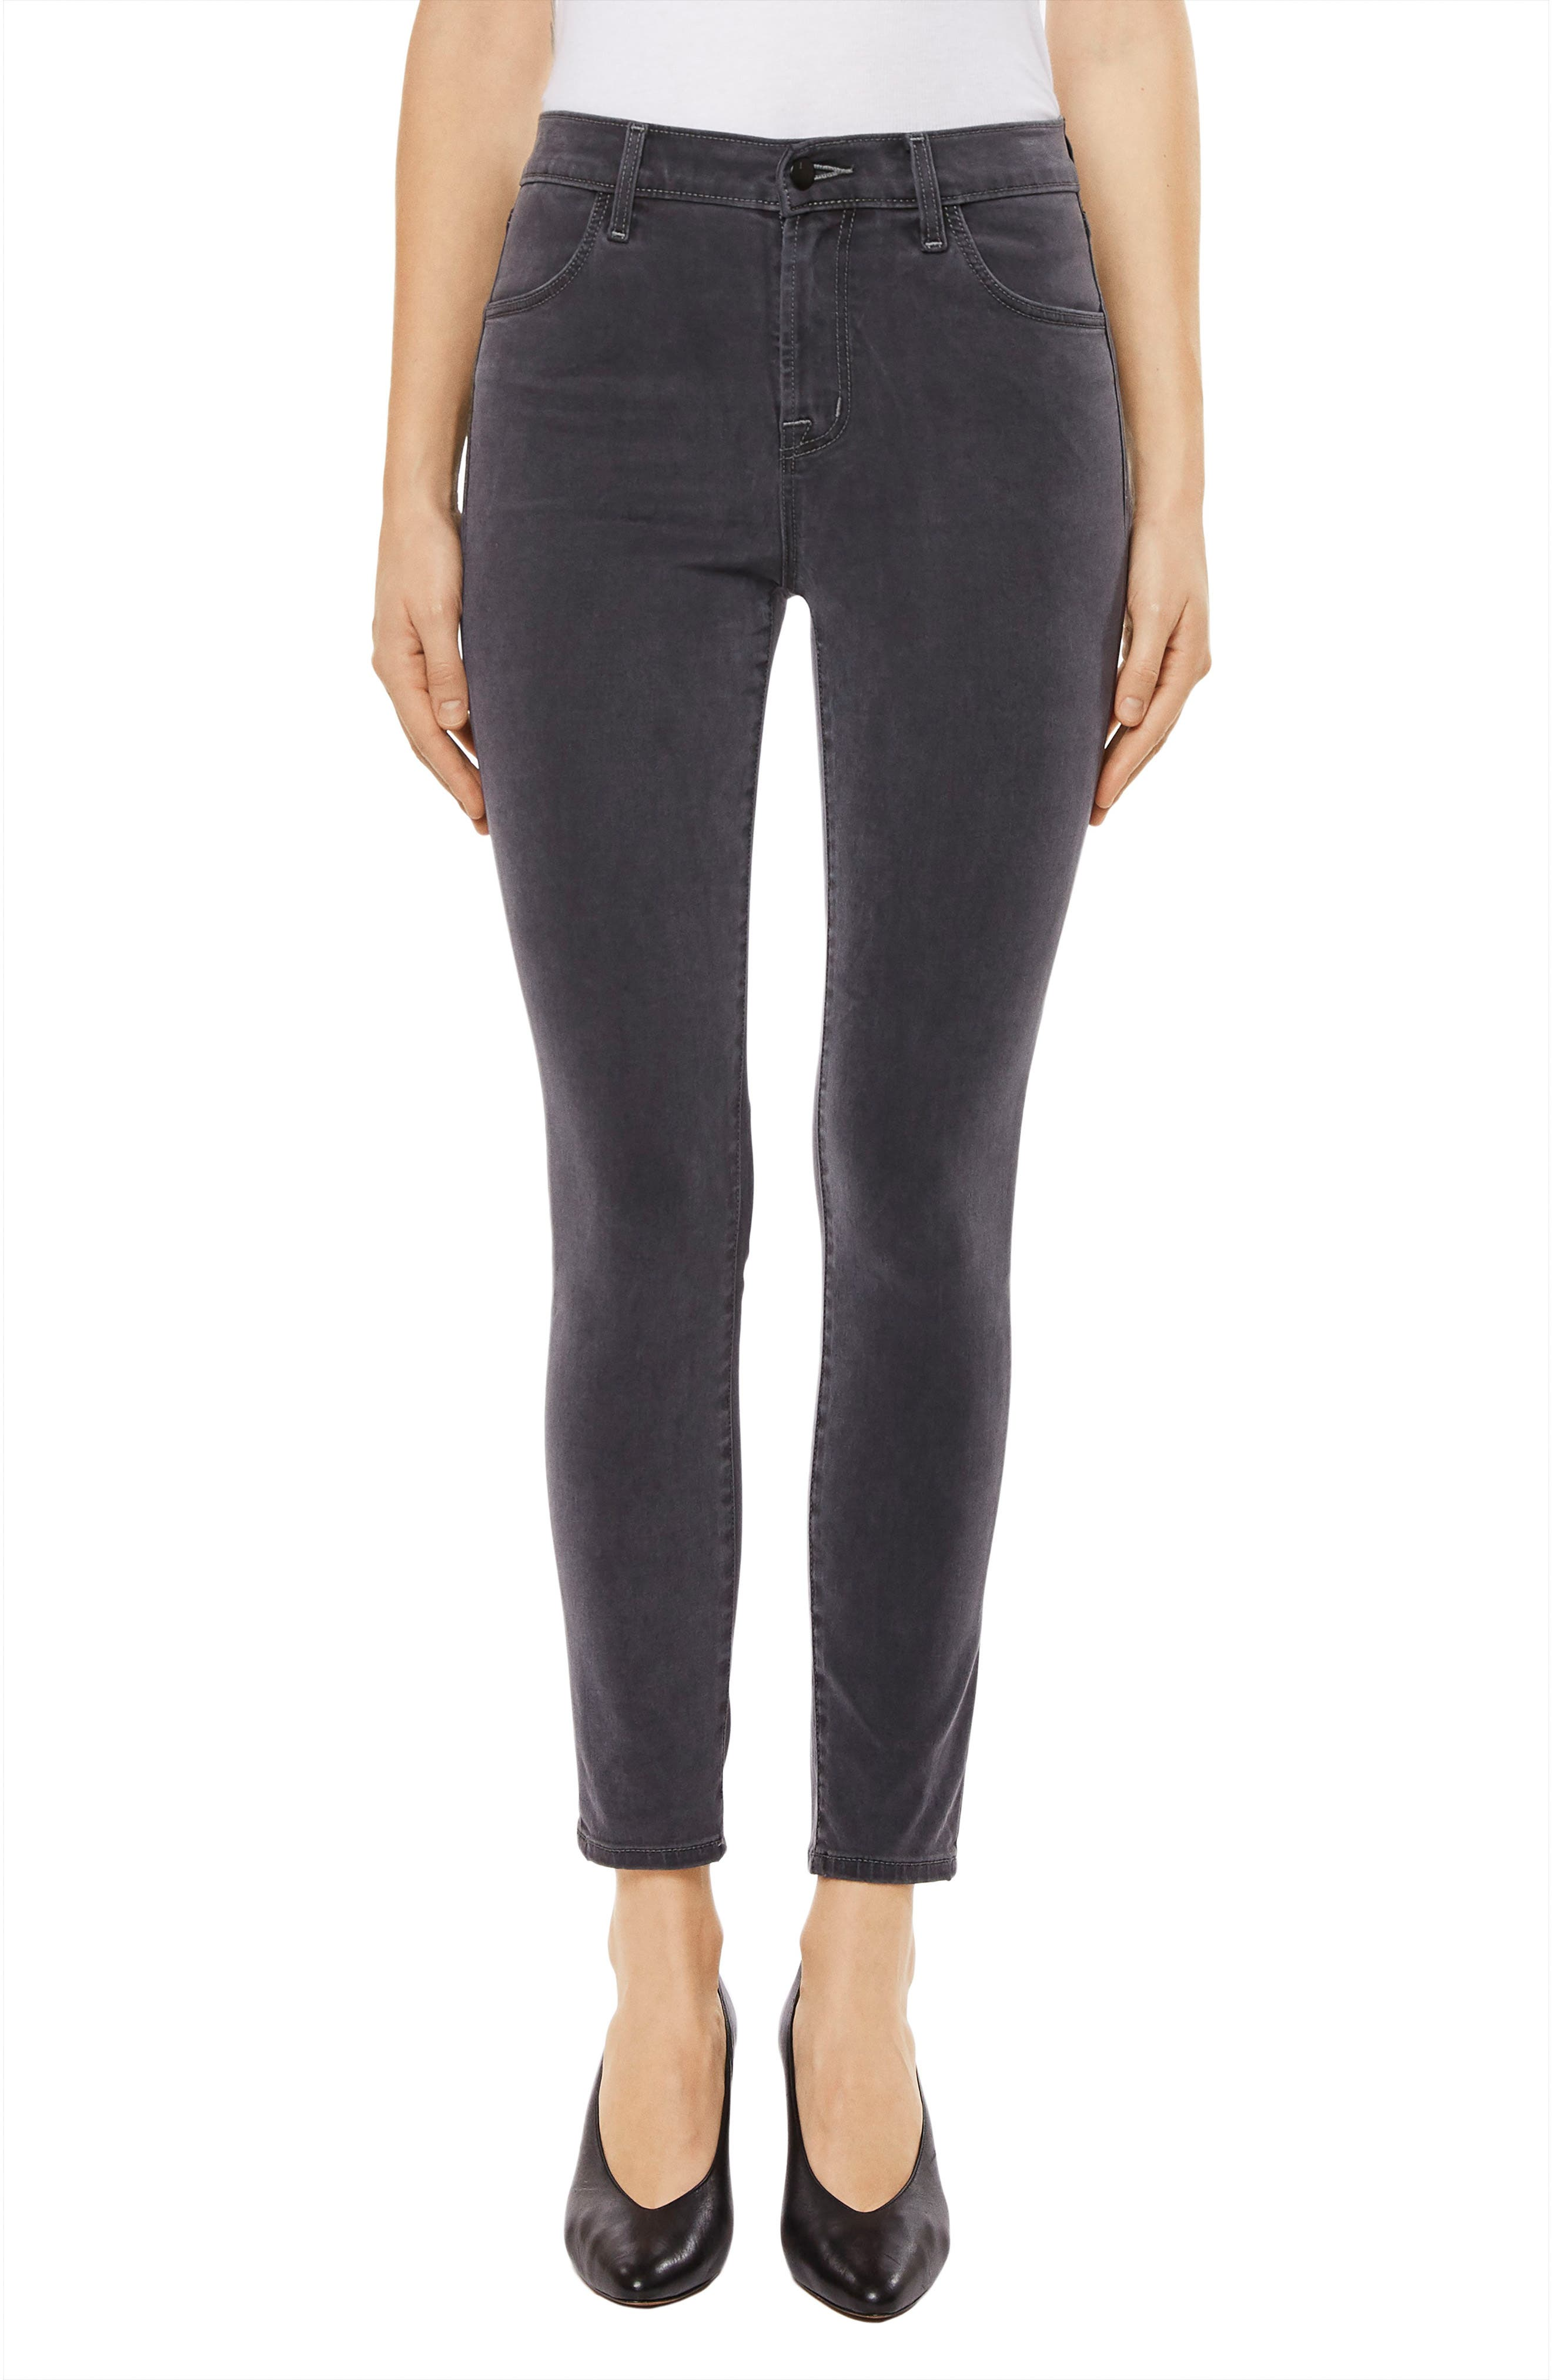 Alternate Image 1 Selected - J Brand Alana High Waist Crop Skinny Jeans (Dust)